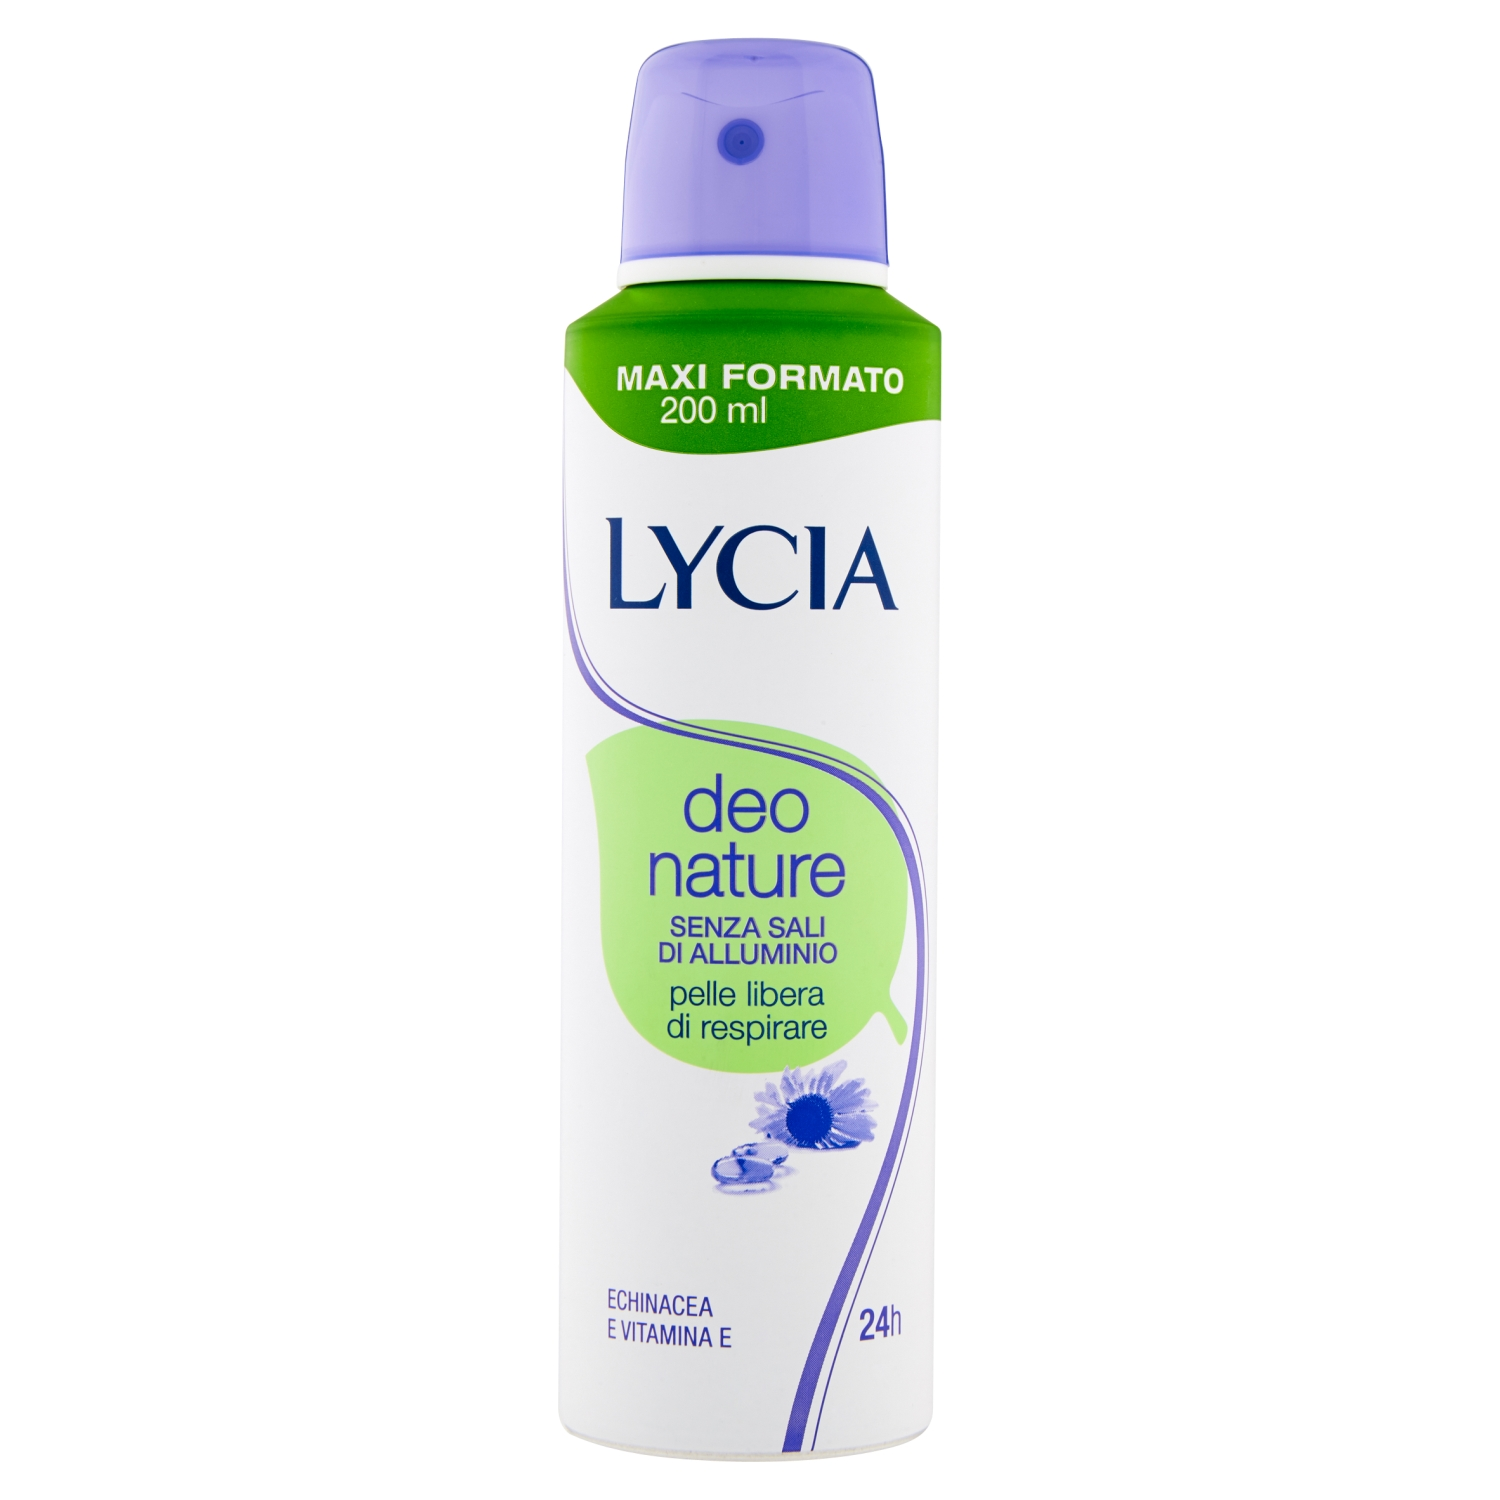 Lycia  Deo nature  deodorante spray 200 ml